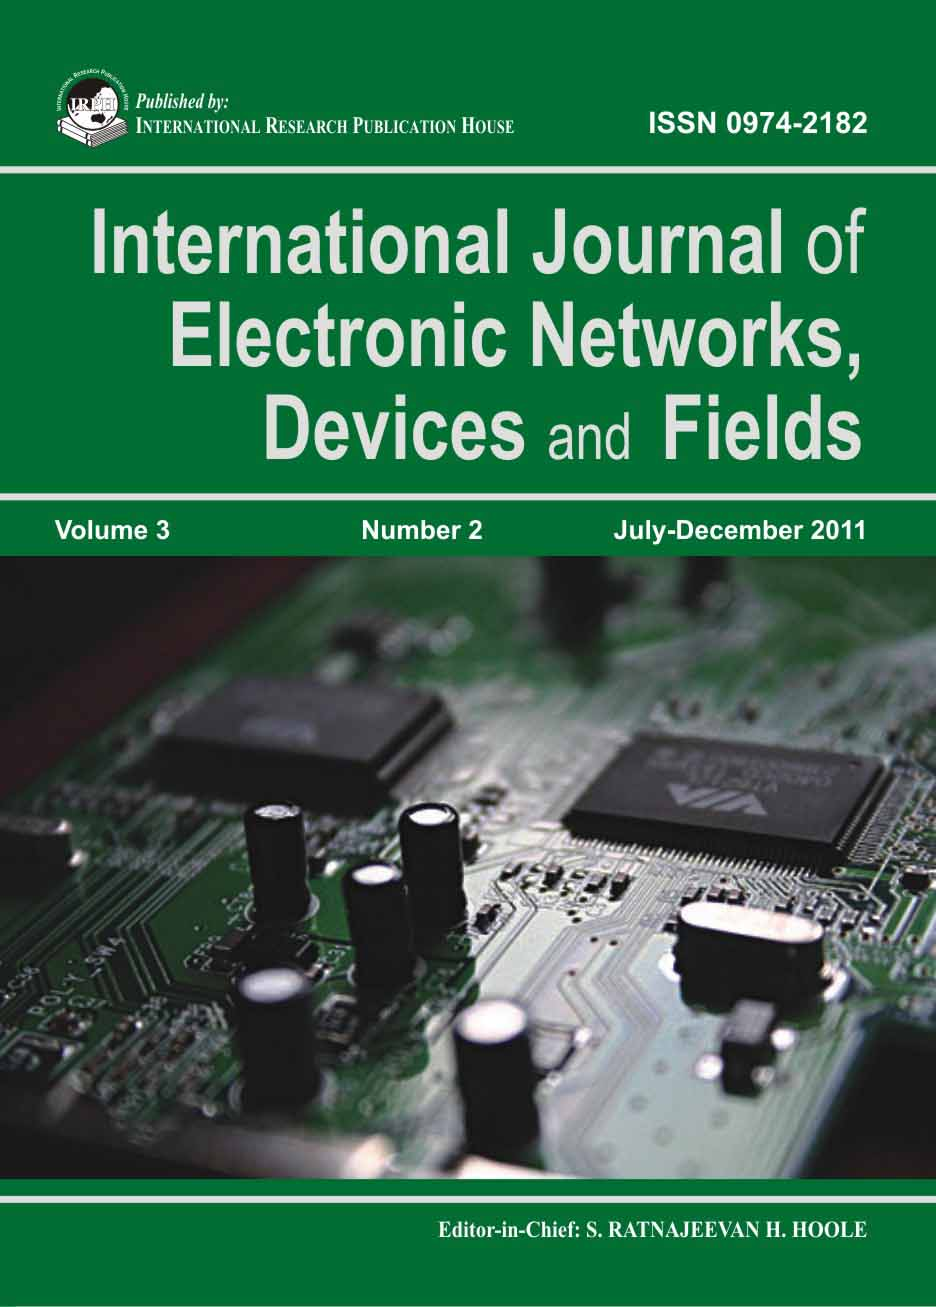 ijendf, international journal of electronic networks, devices and fieldselectrical and computer engineering department